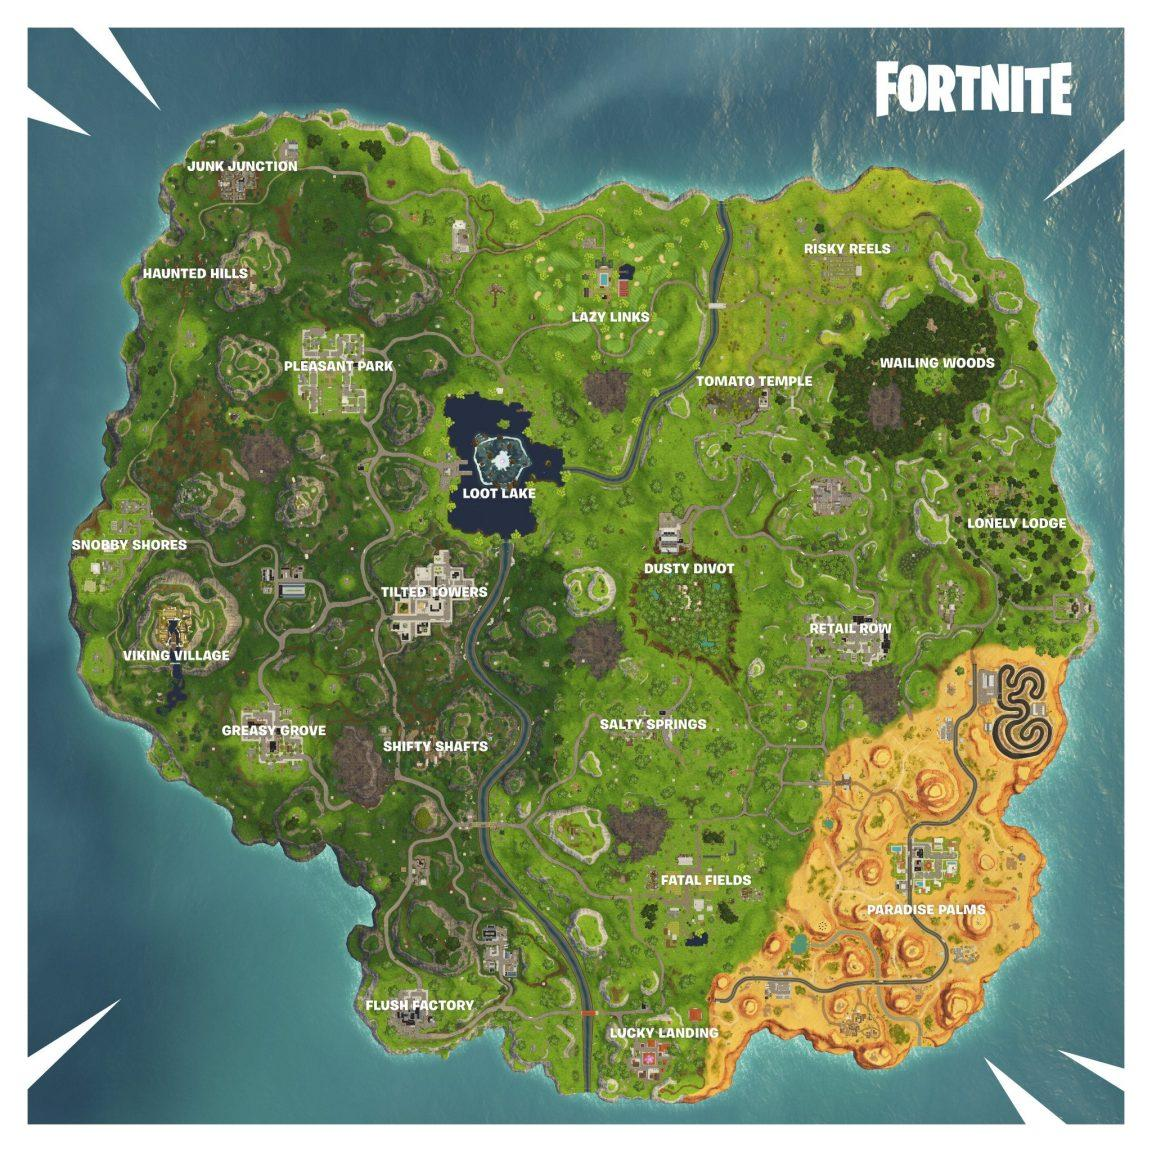 The new Season 6 map